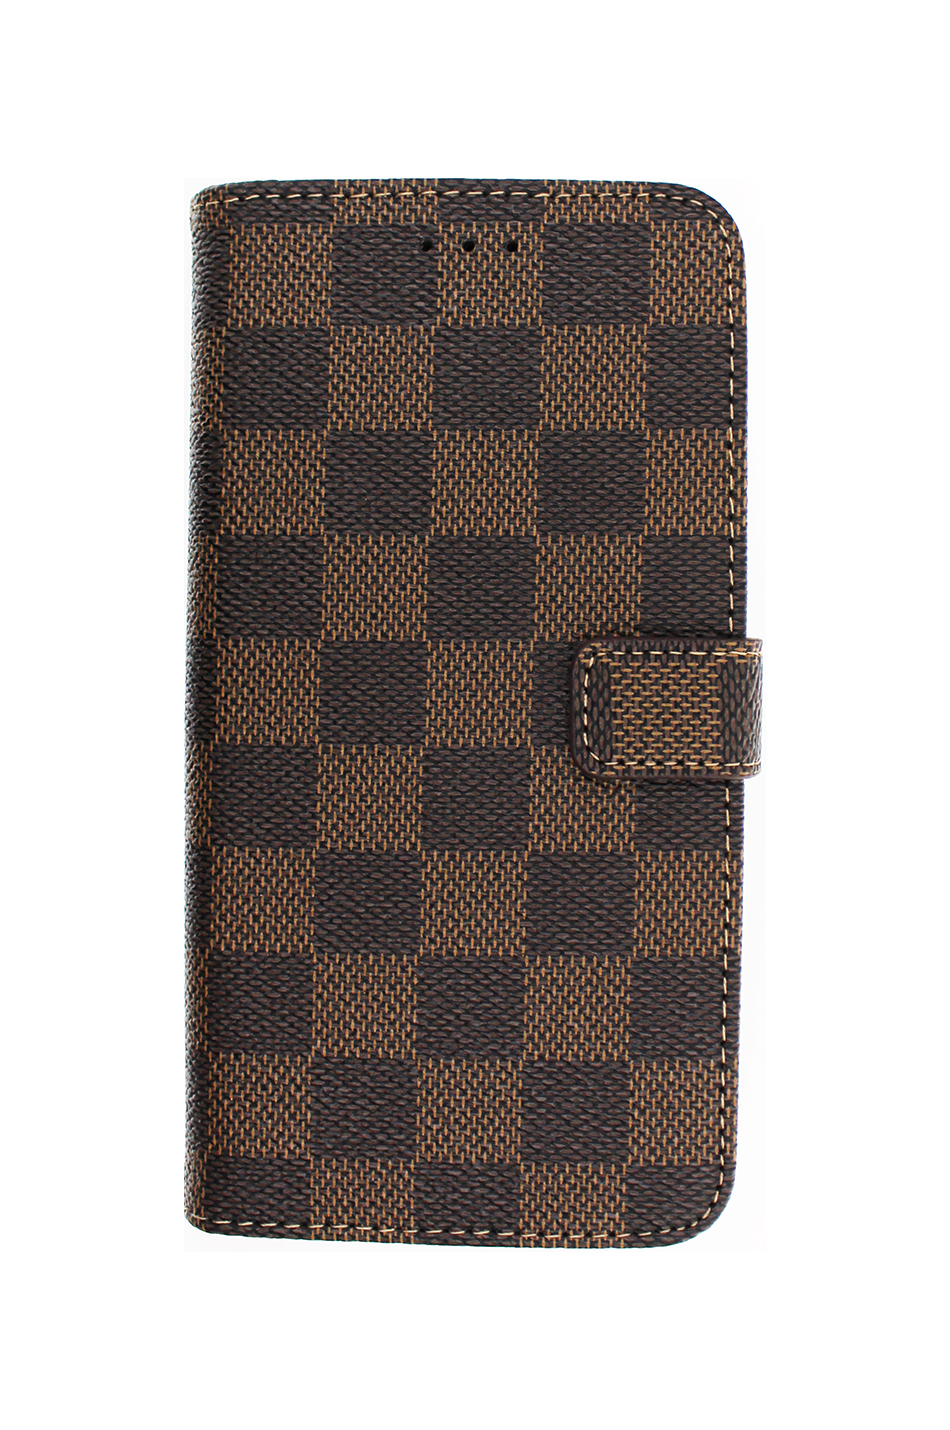 Checker Wallet Brown Plånboksfodral från Essentials till iPhone 7 Plus